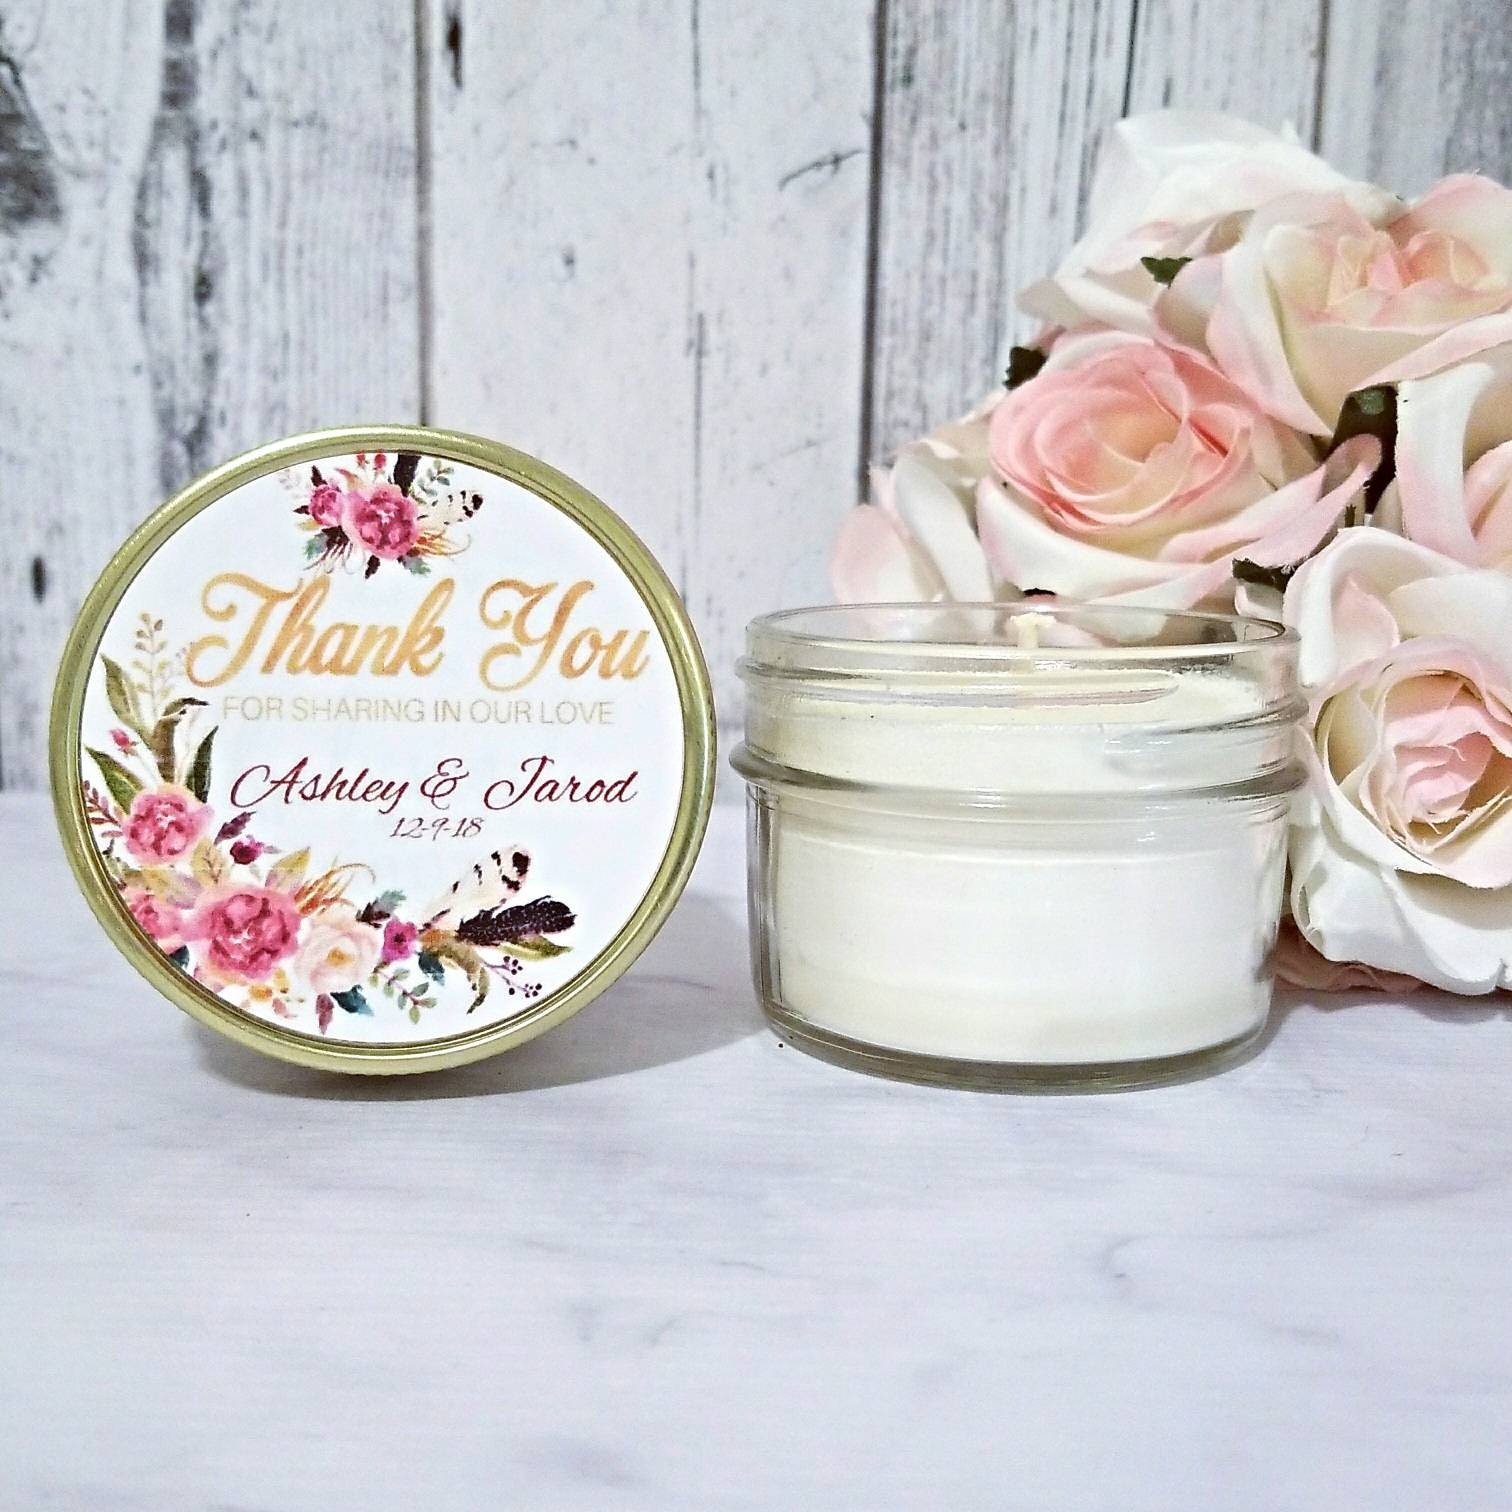 Wedding Candle Favor - Blush and Gold Wedding Favors Candle ...